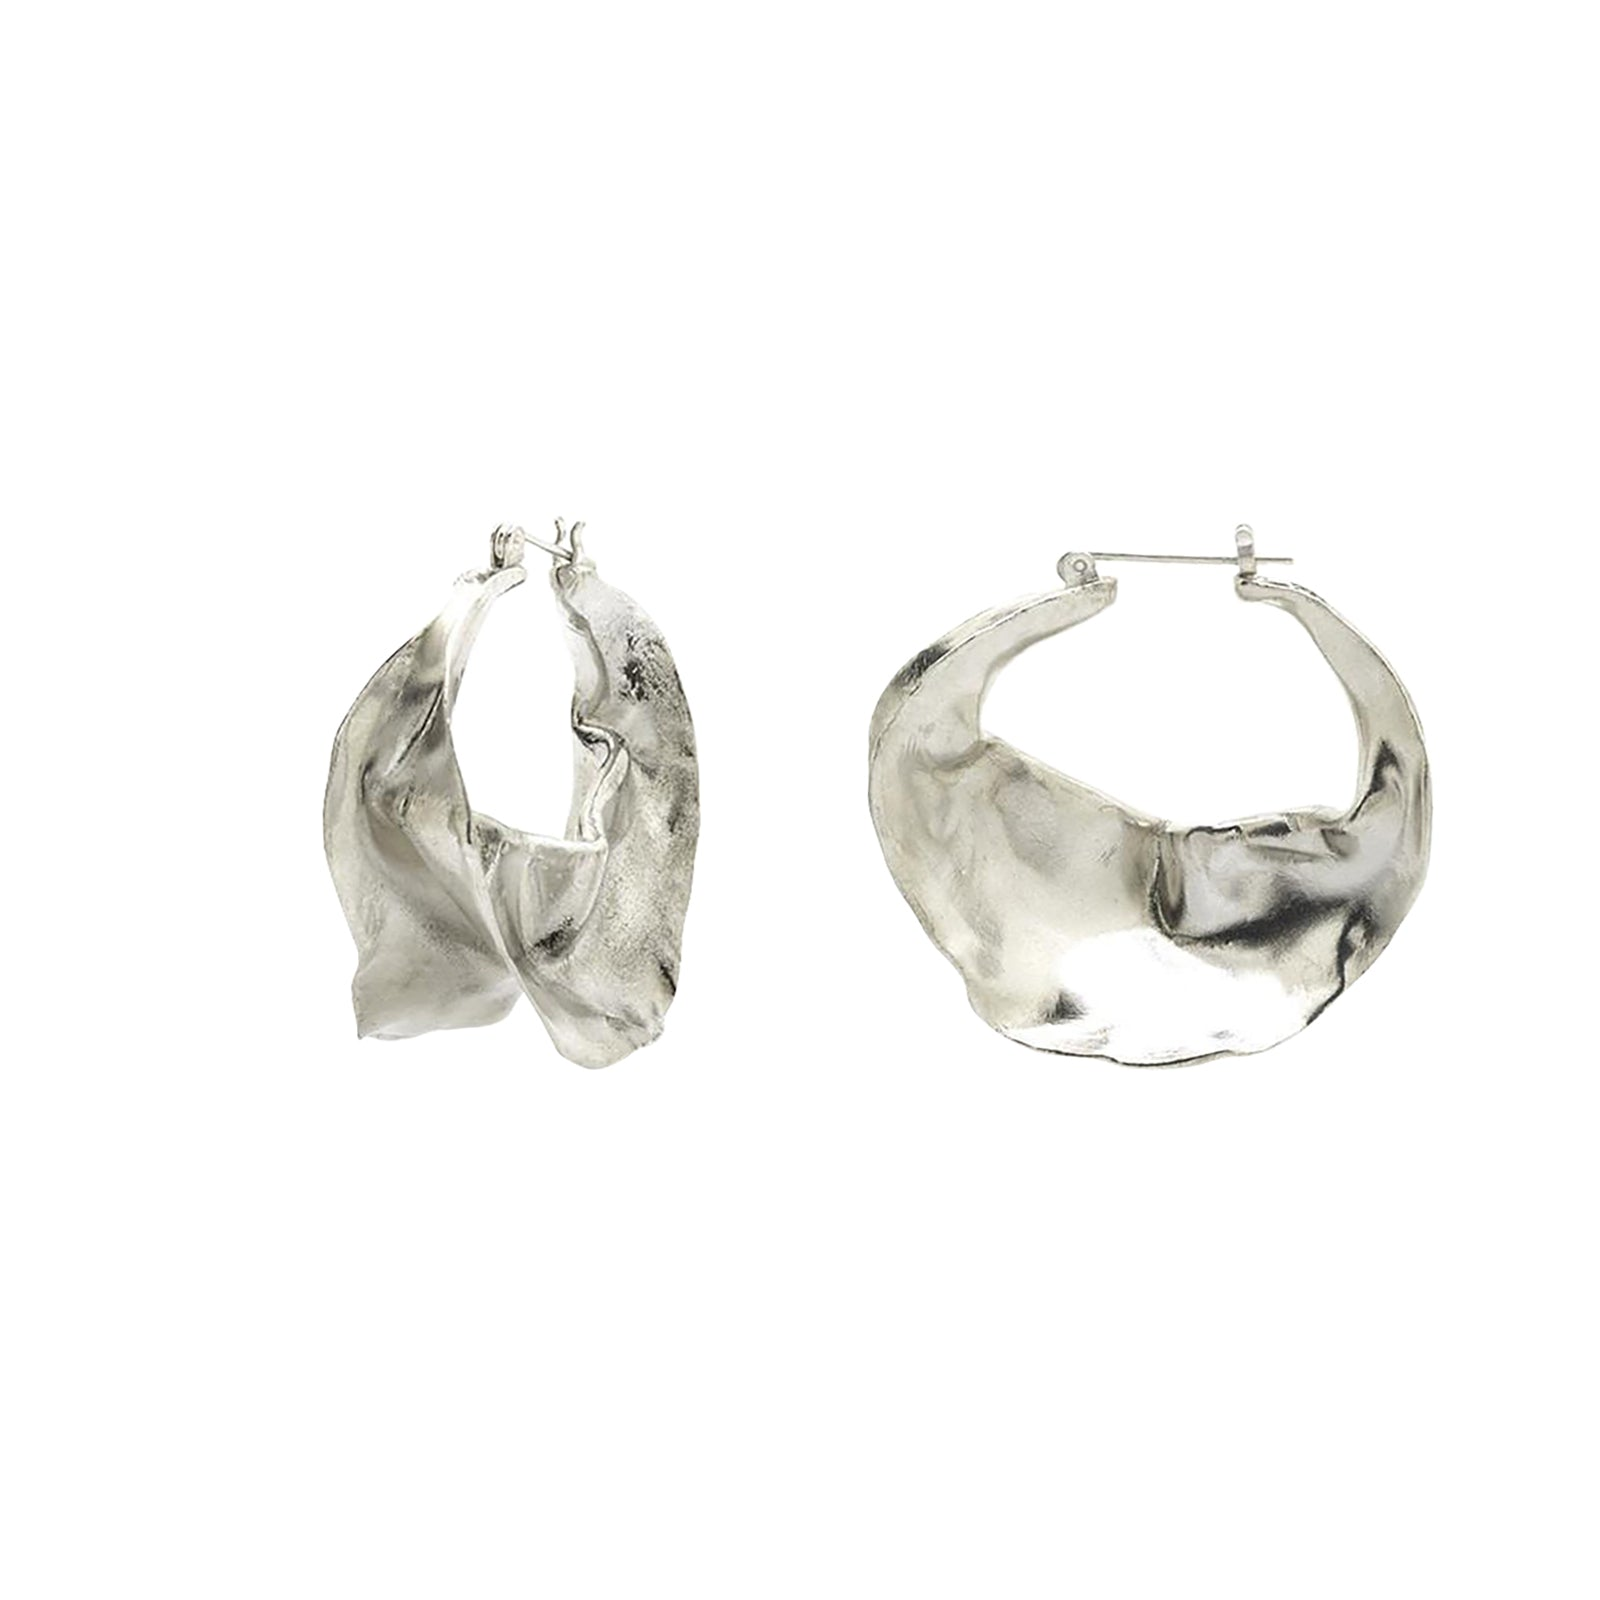 Ariana Boussard-Reifel Georgia Earrings - Sterling Silver - Earrings - Broken English Jewelry